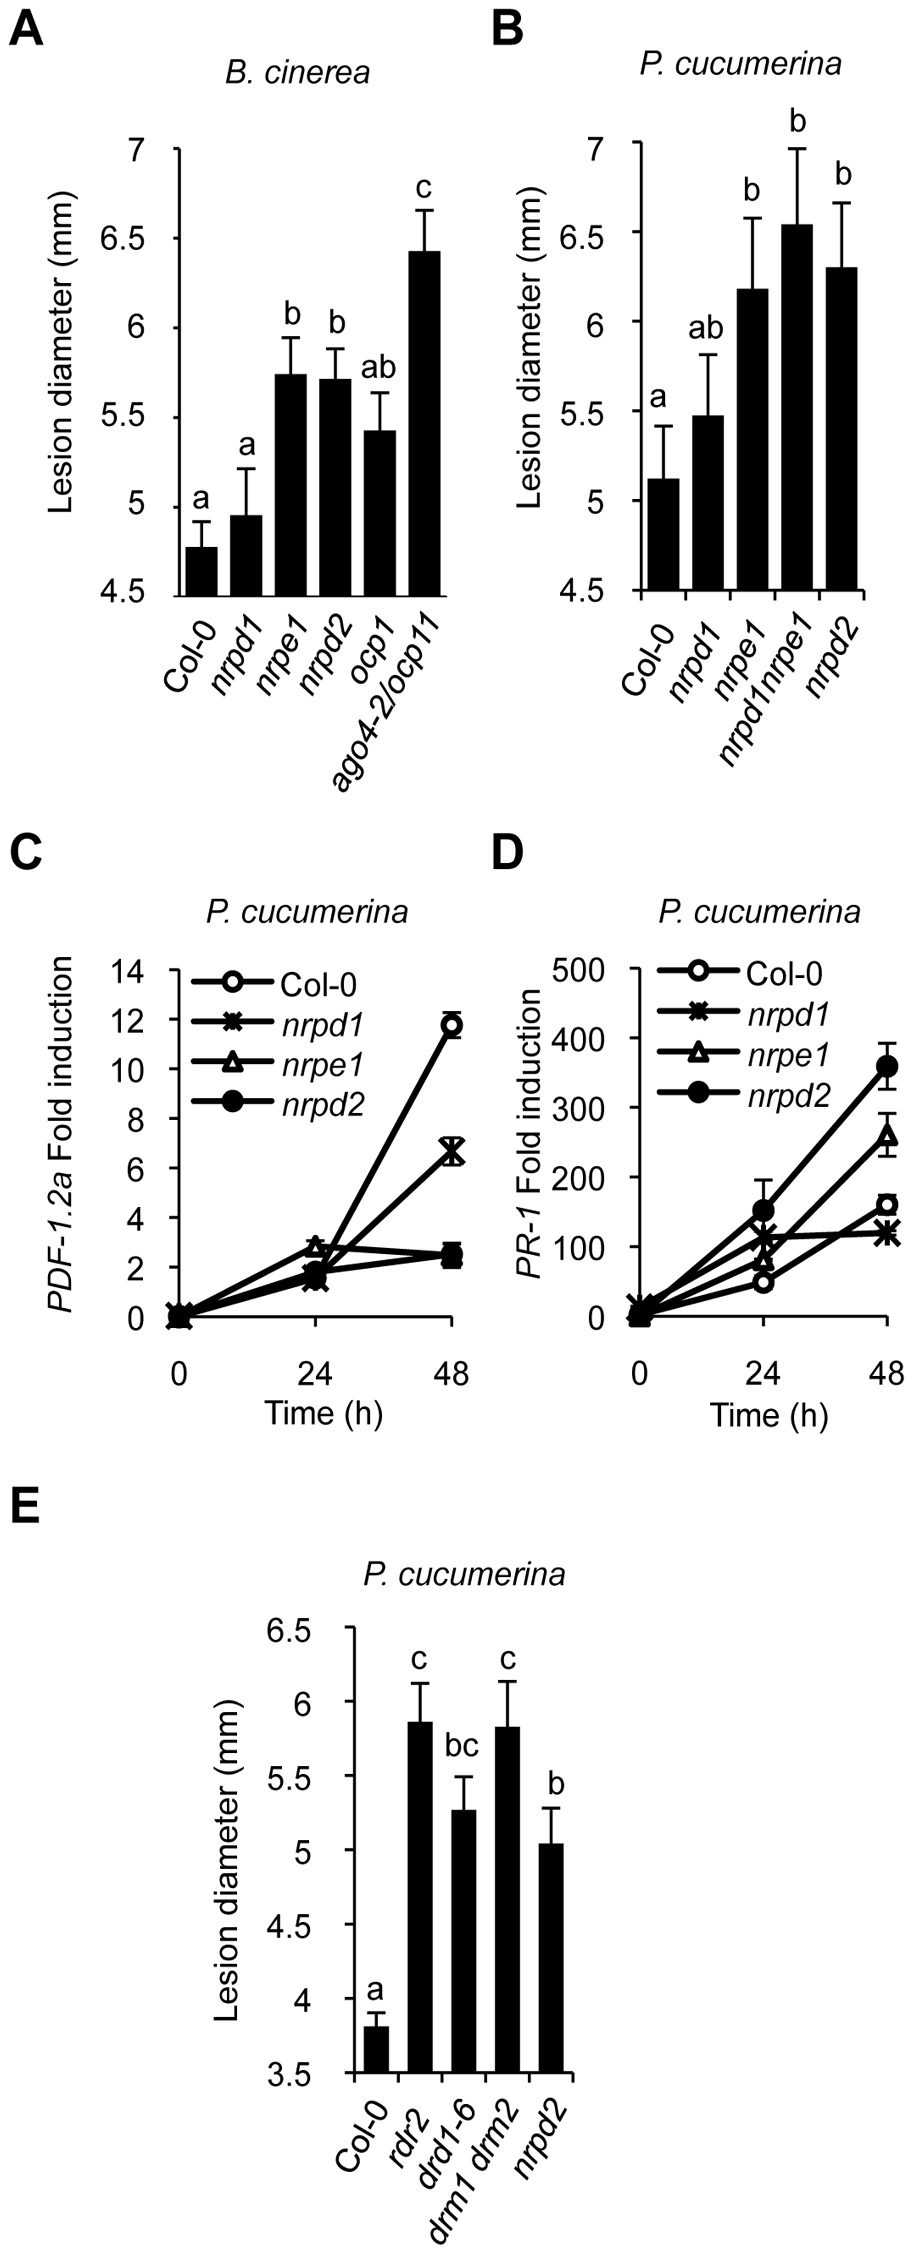 Comparative immune responses of RdDM mutants to inoculation with <i>B. cinerea</i> and <i>P. cucumerina</i>.